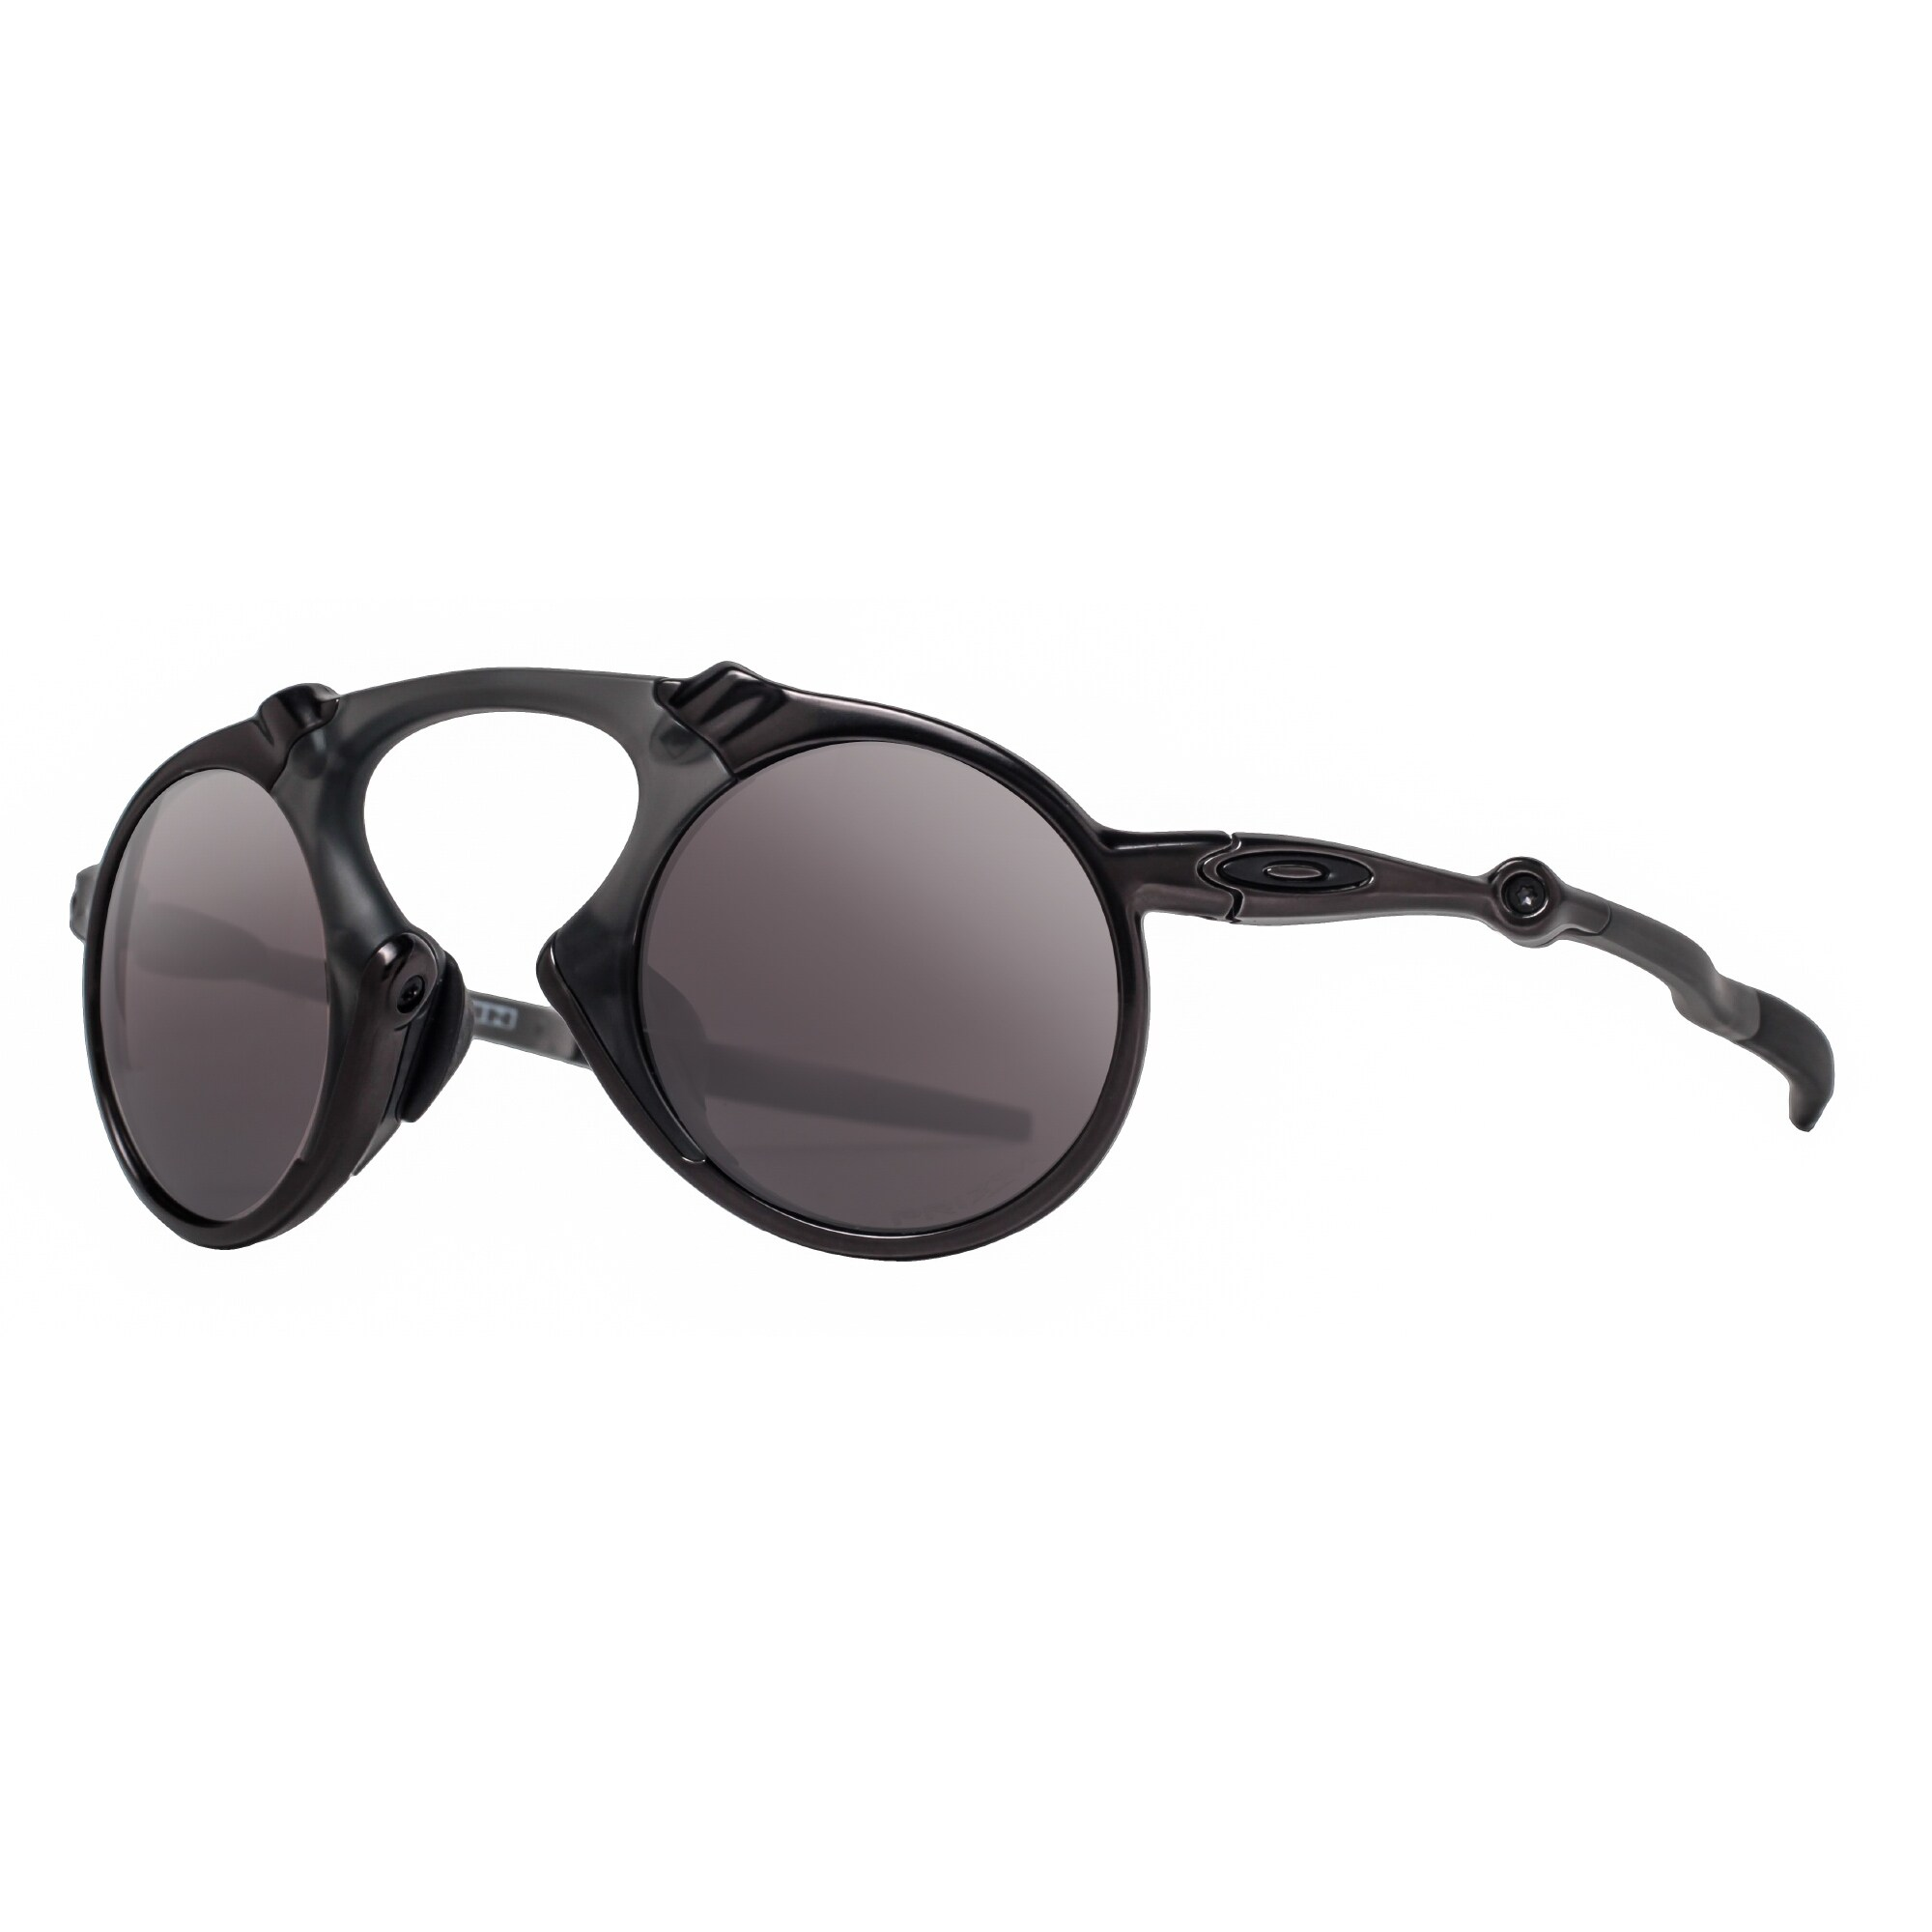 f30717f75d Supply Oakley Sunglasses Free Shipping « One More Soul